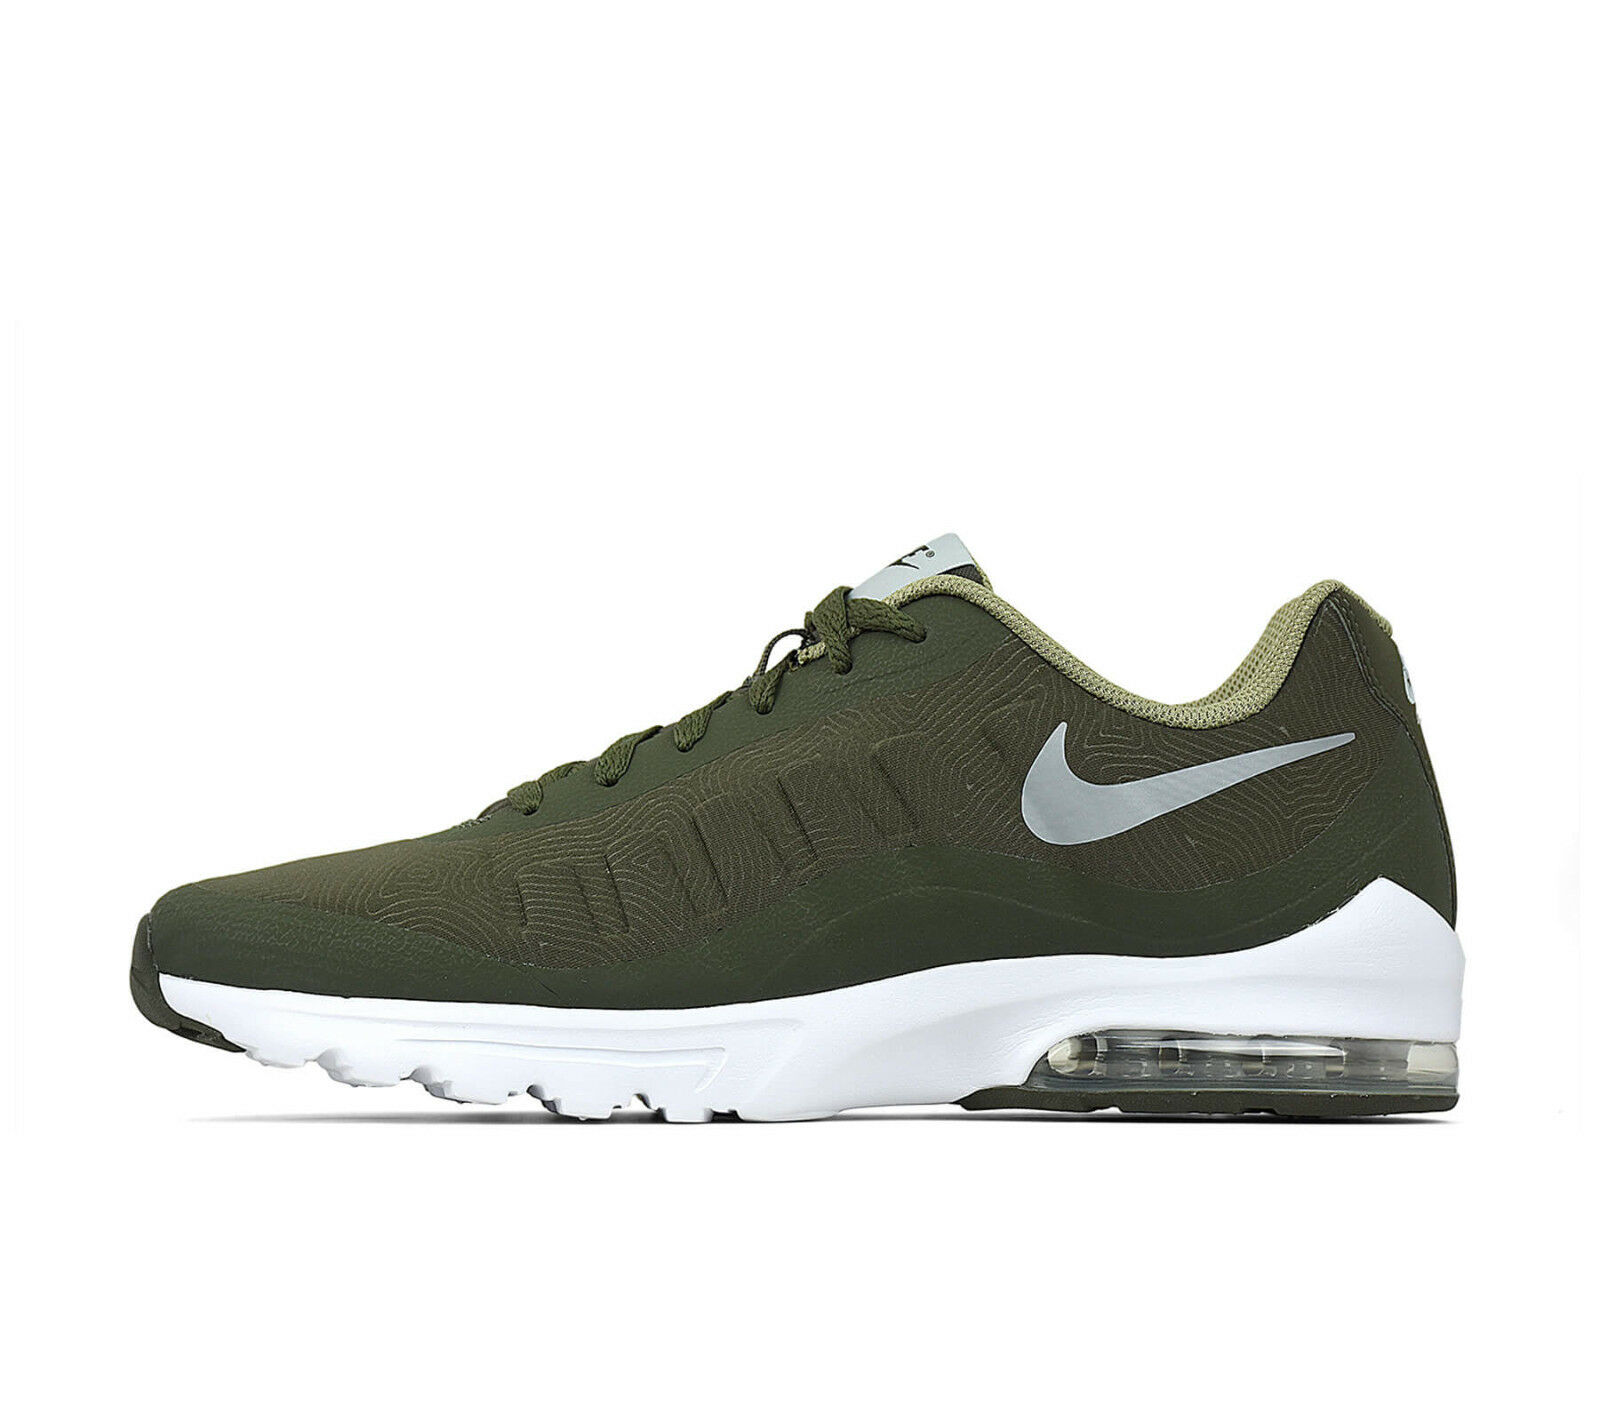 NIKE AIR MAX INVIGOR SE Running 13 Trainers Gym Casual UK 13 Running (EUR 48.5) Cargo Khaki b3d8d5